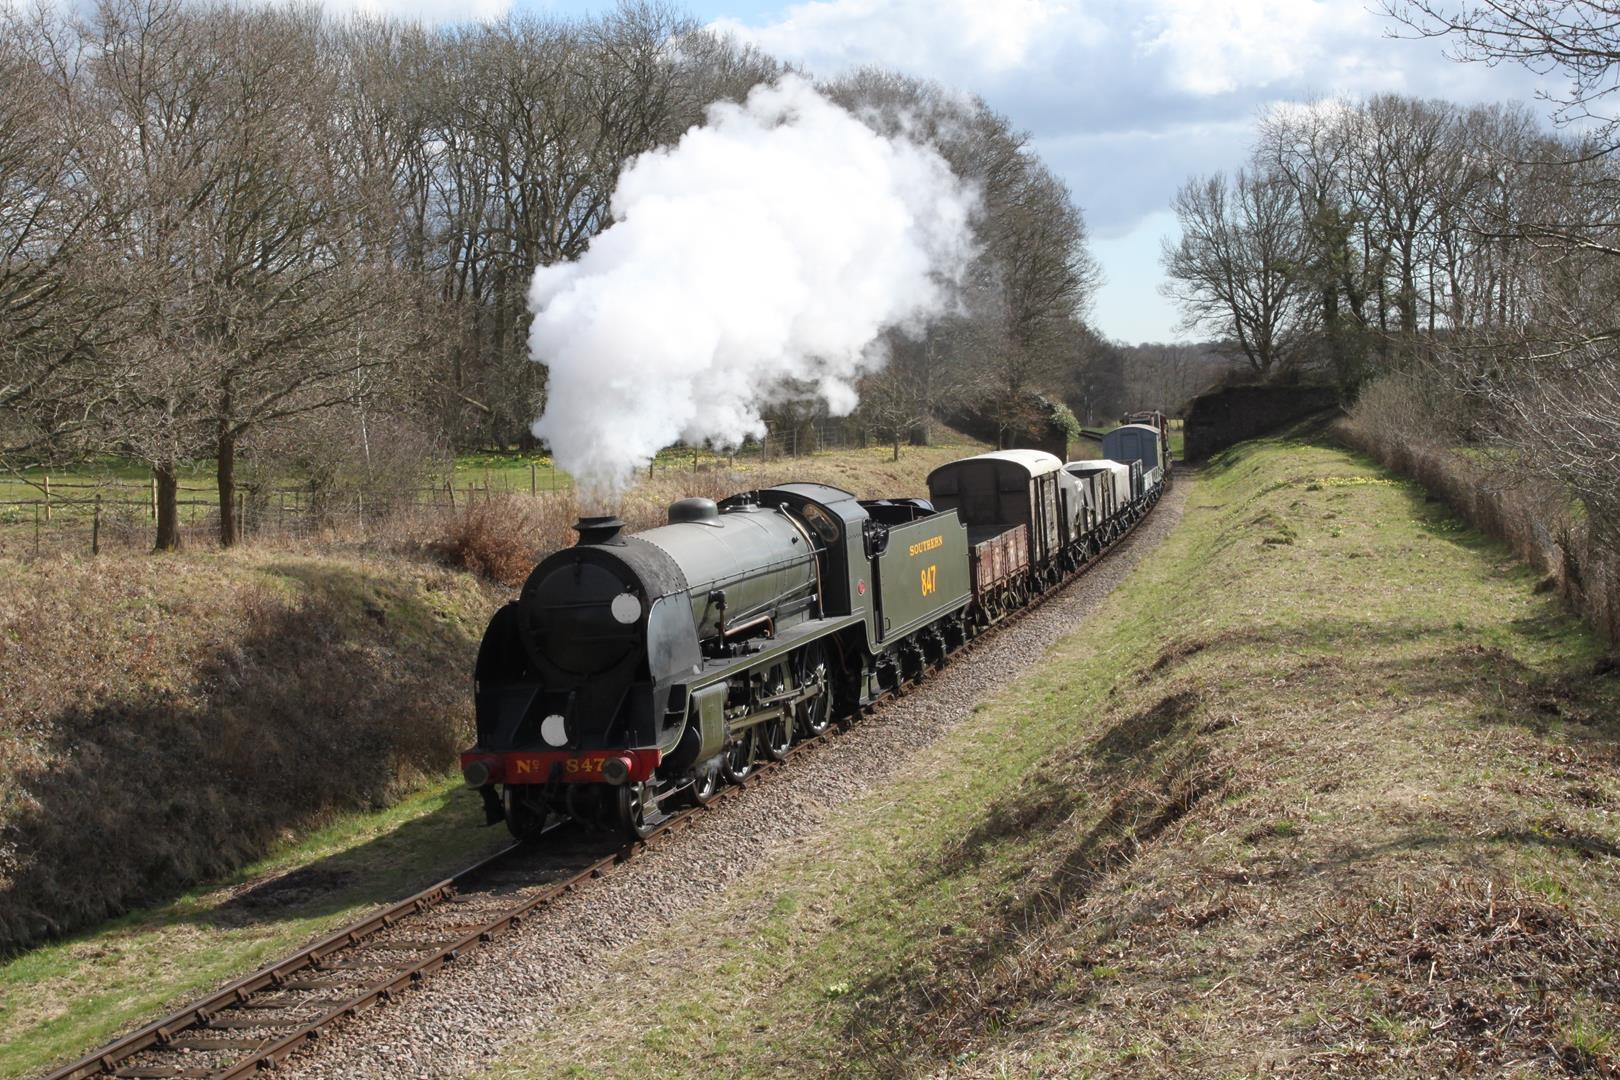 bluebell_railway_publicity_photo_credit_andrew_strongitharm_1620